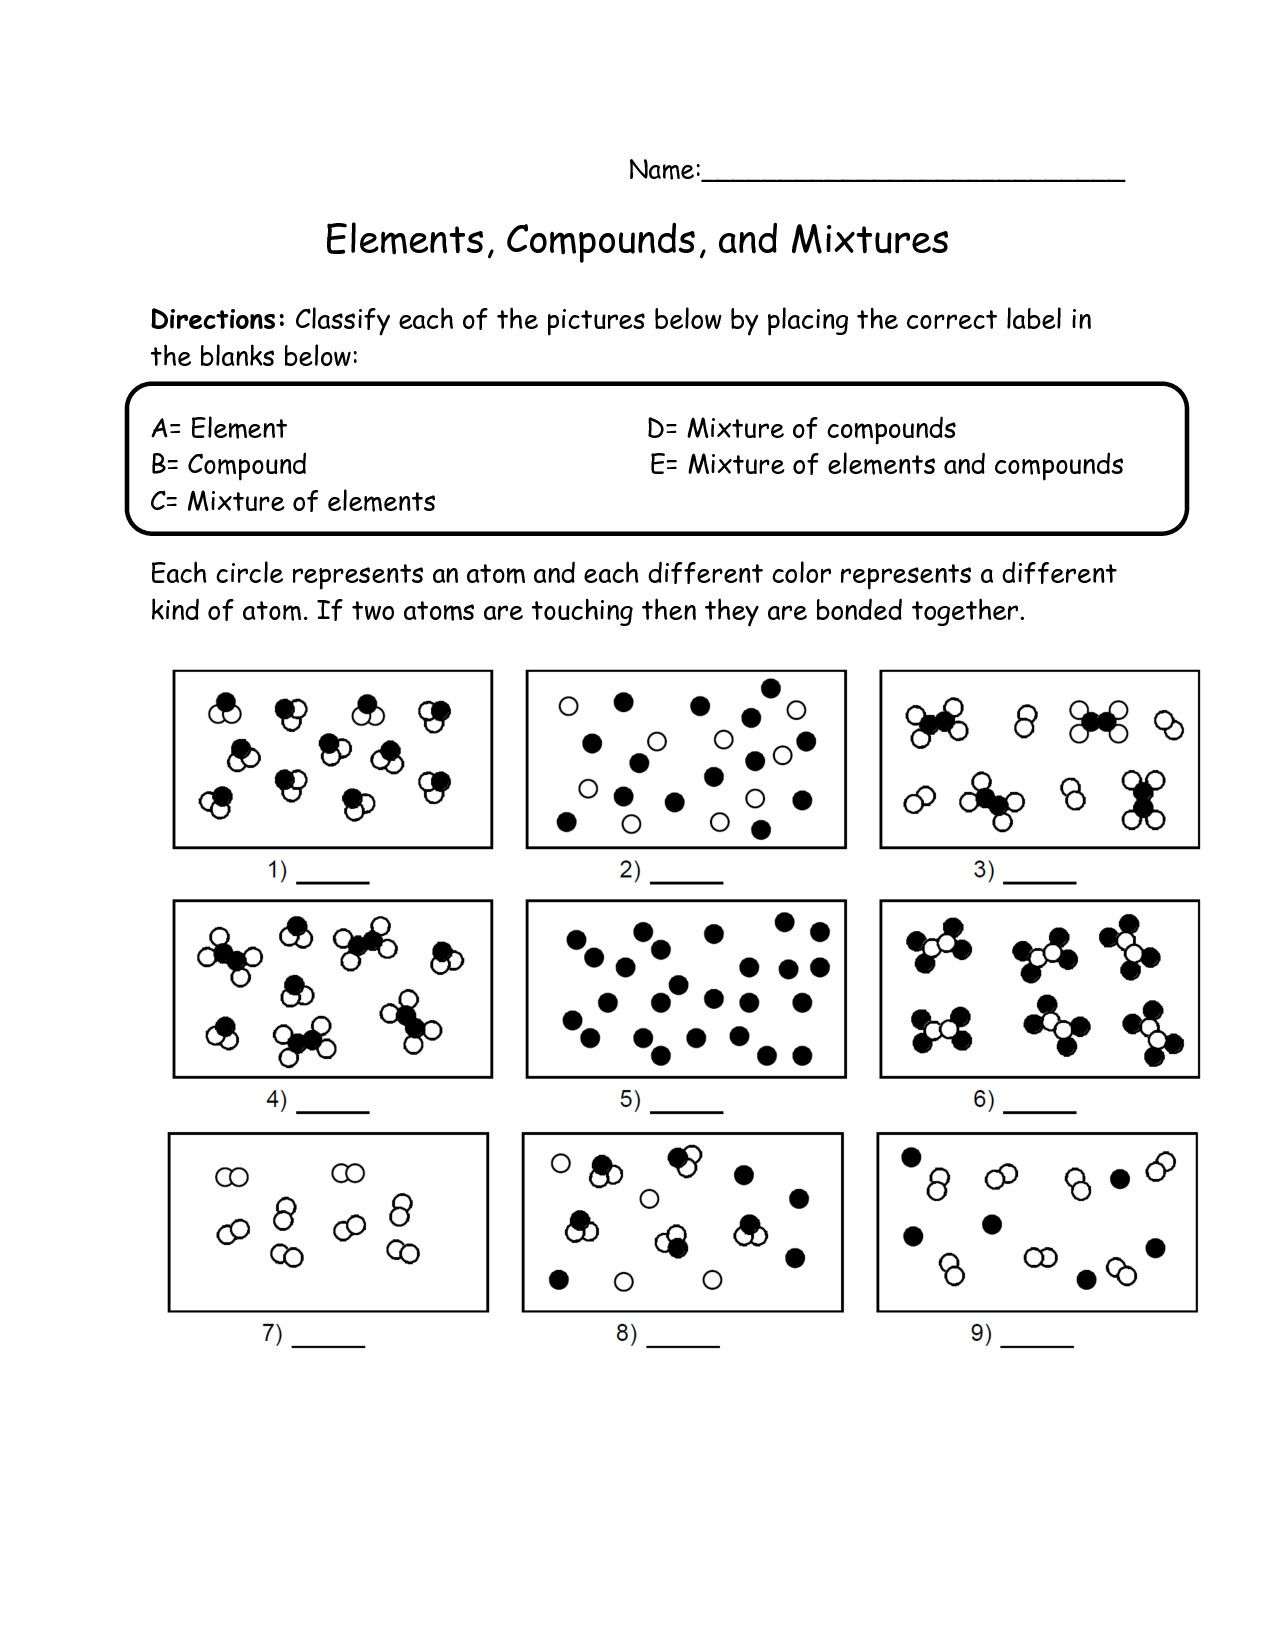 Elements Compounds And Mixtures Worksheet Grade 8